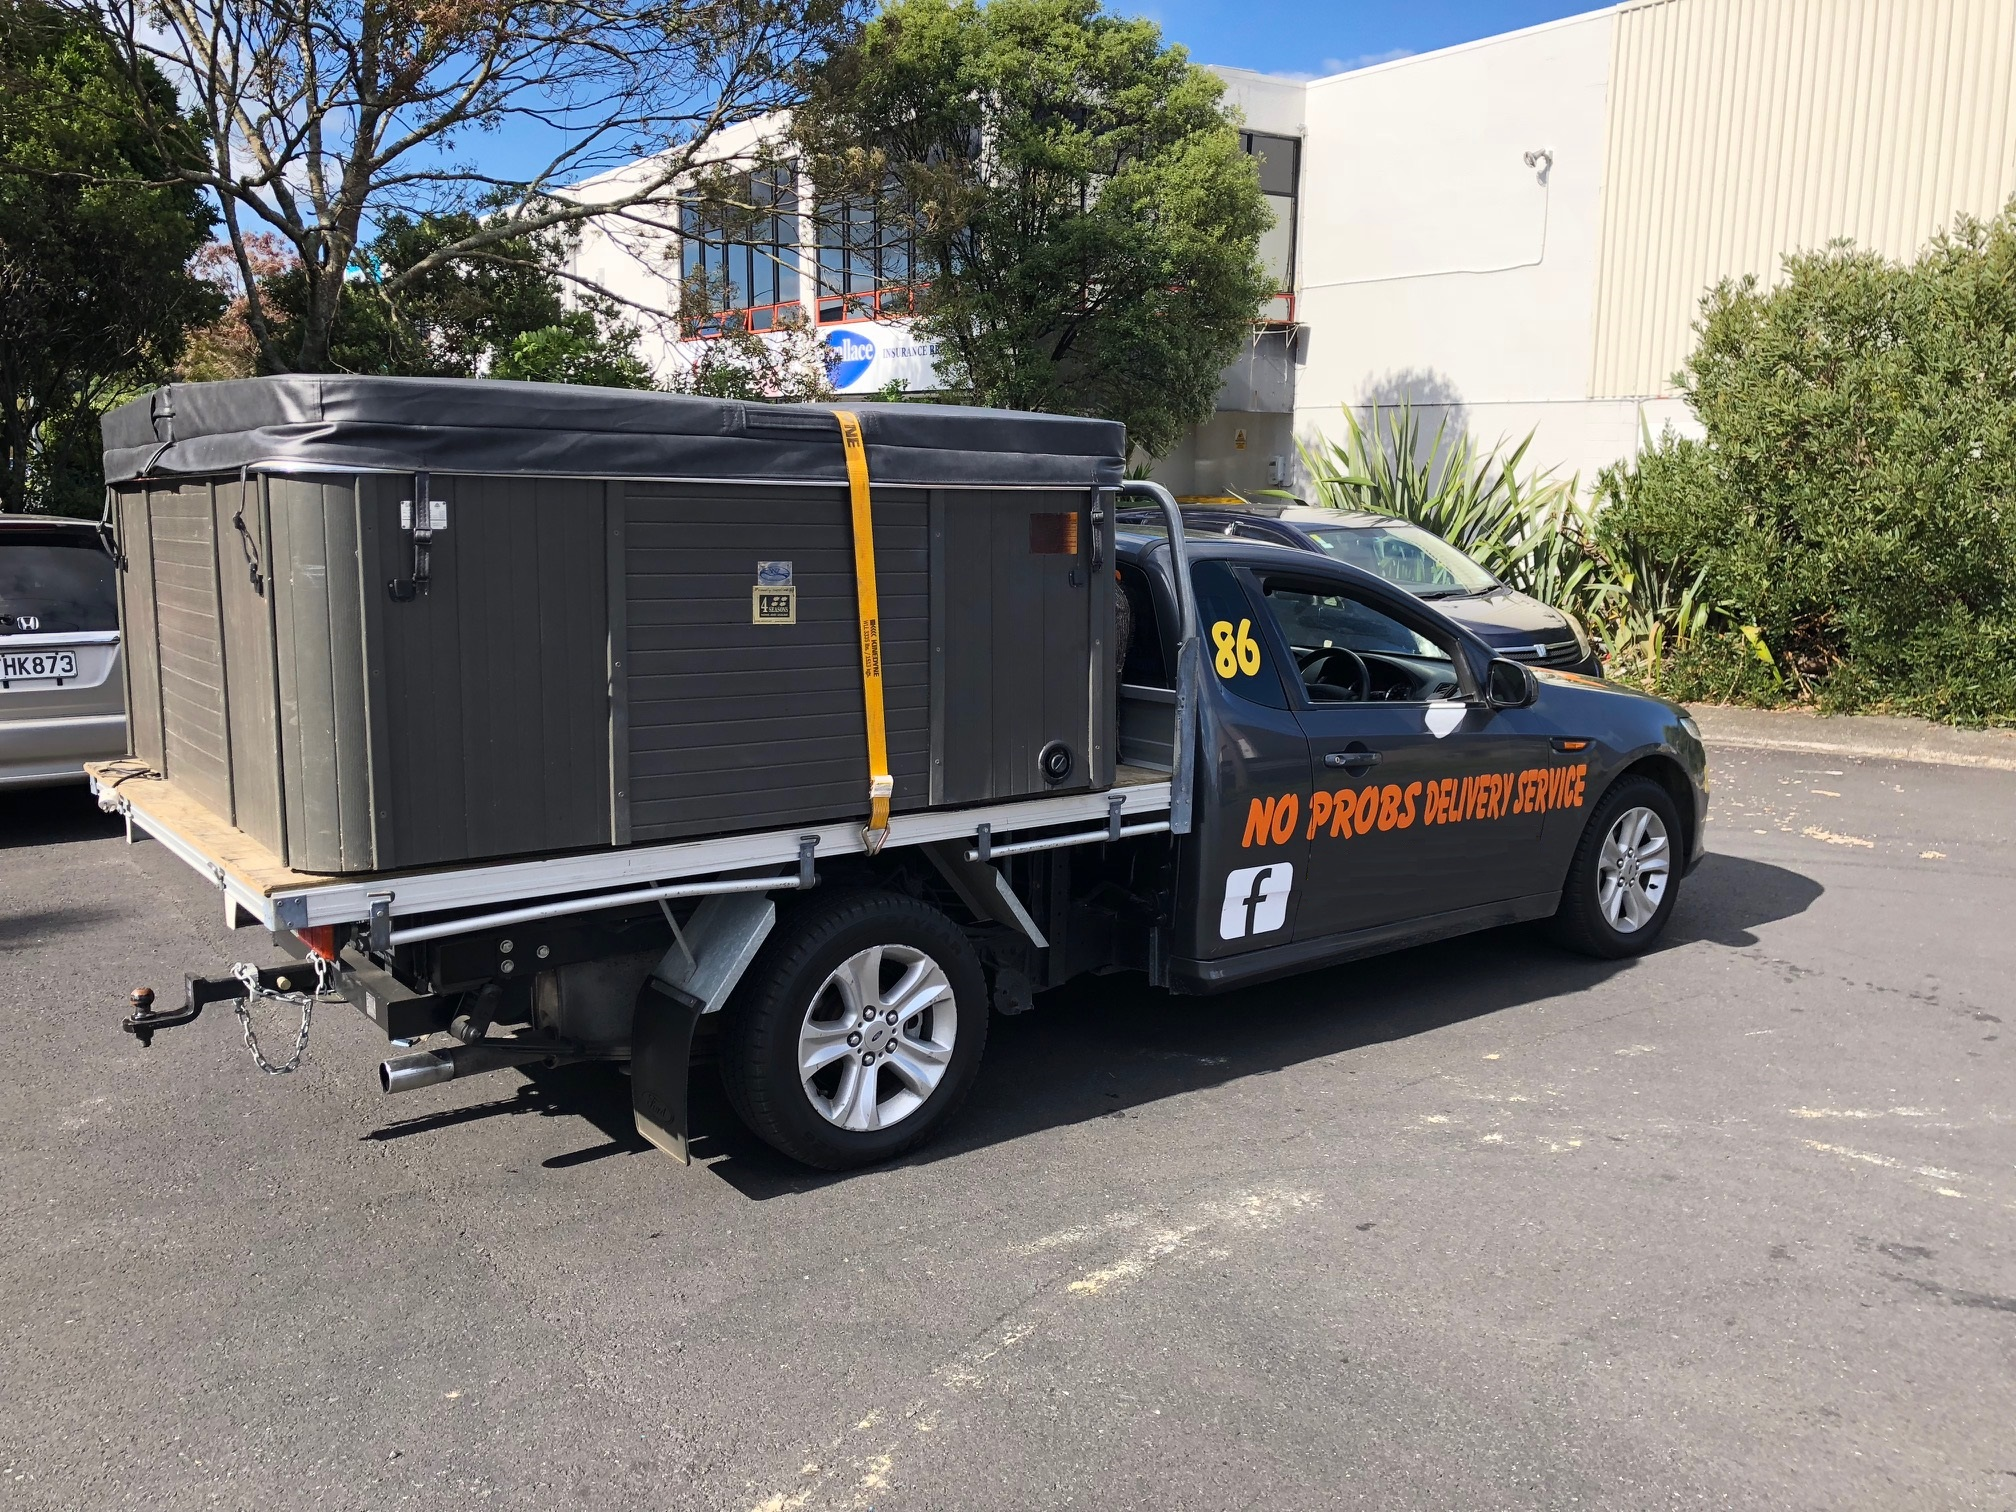 Fine Spa Pool Movers Service In Auckland Best Transport Removal Download Free Architecture Designs Scobabritishbridgeorg